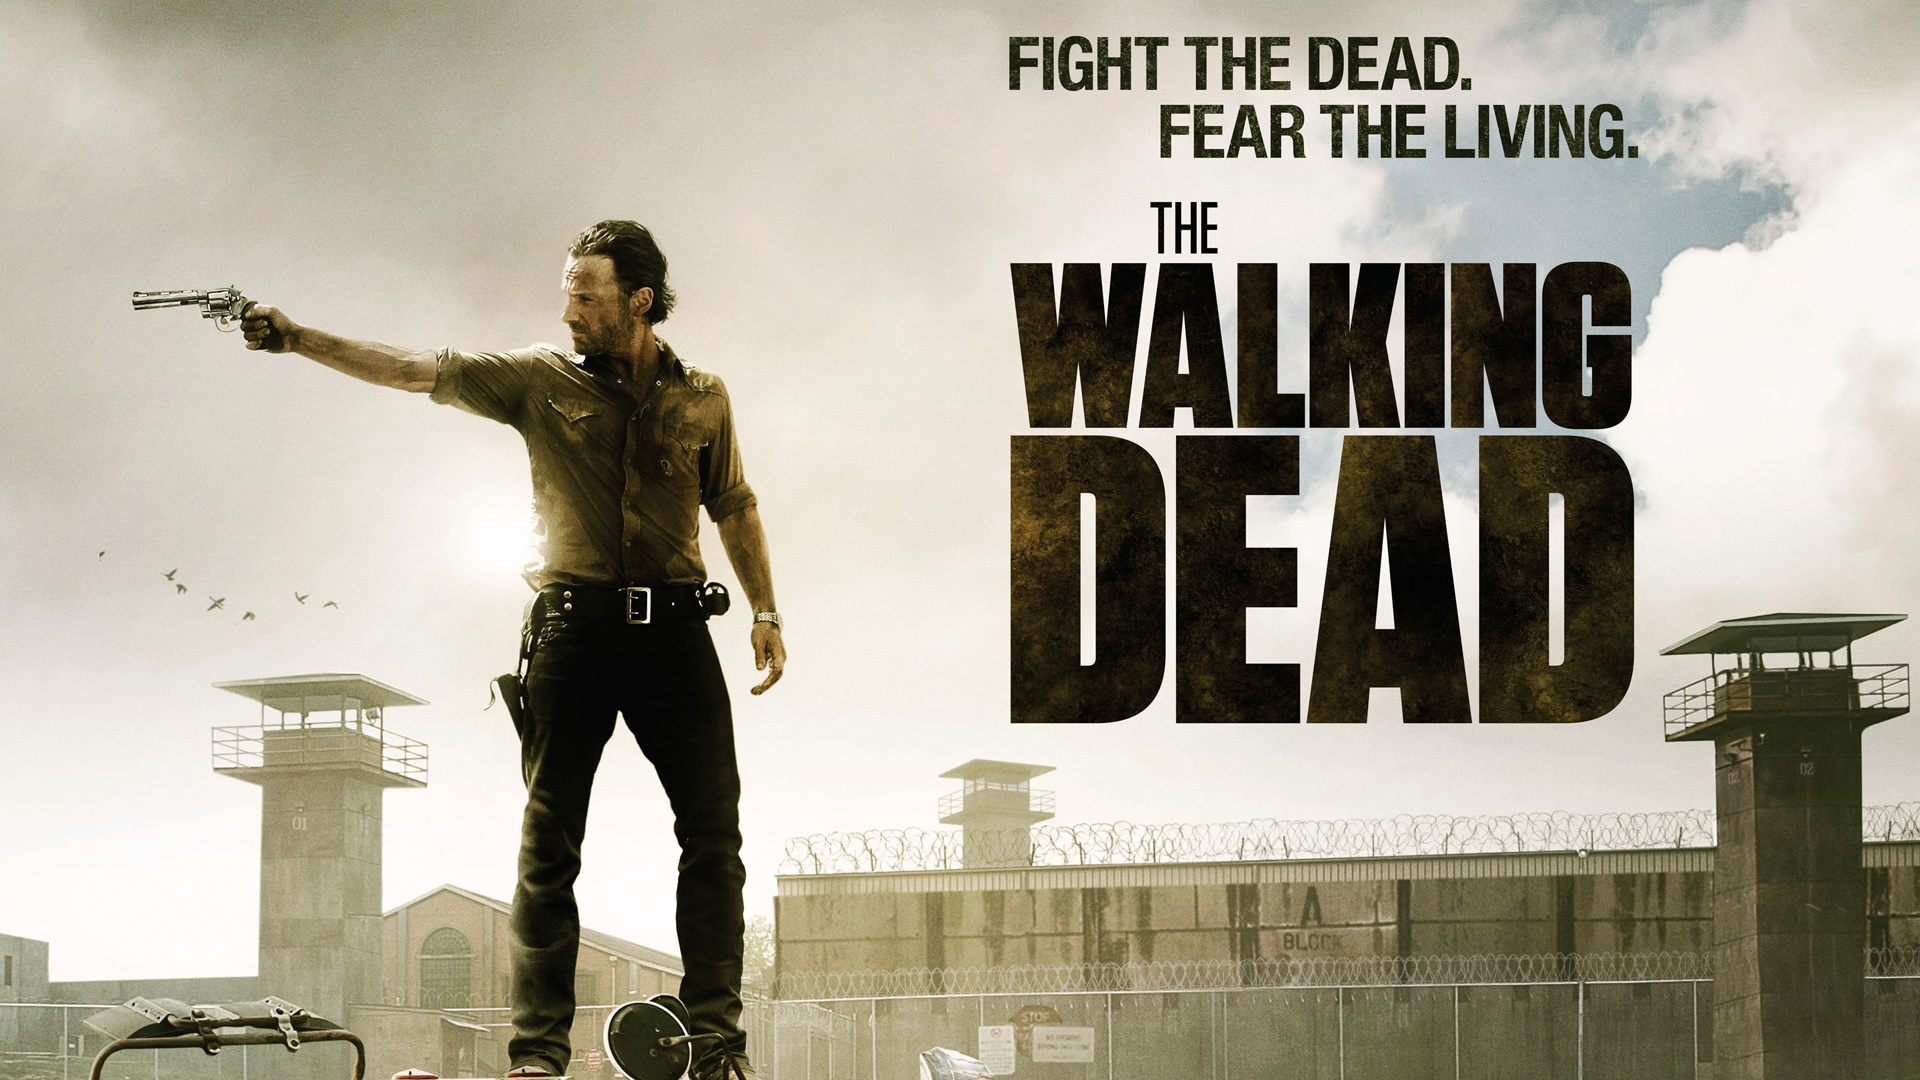 Walking Dead 31944 Hd Wallpaper Backgrounds Download